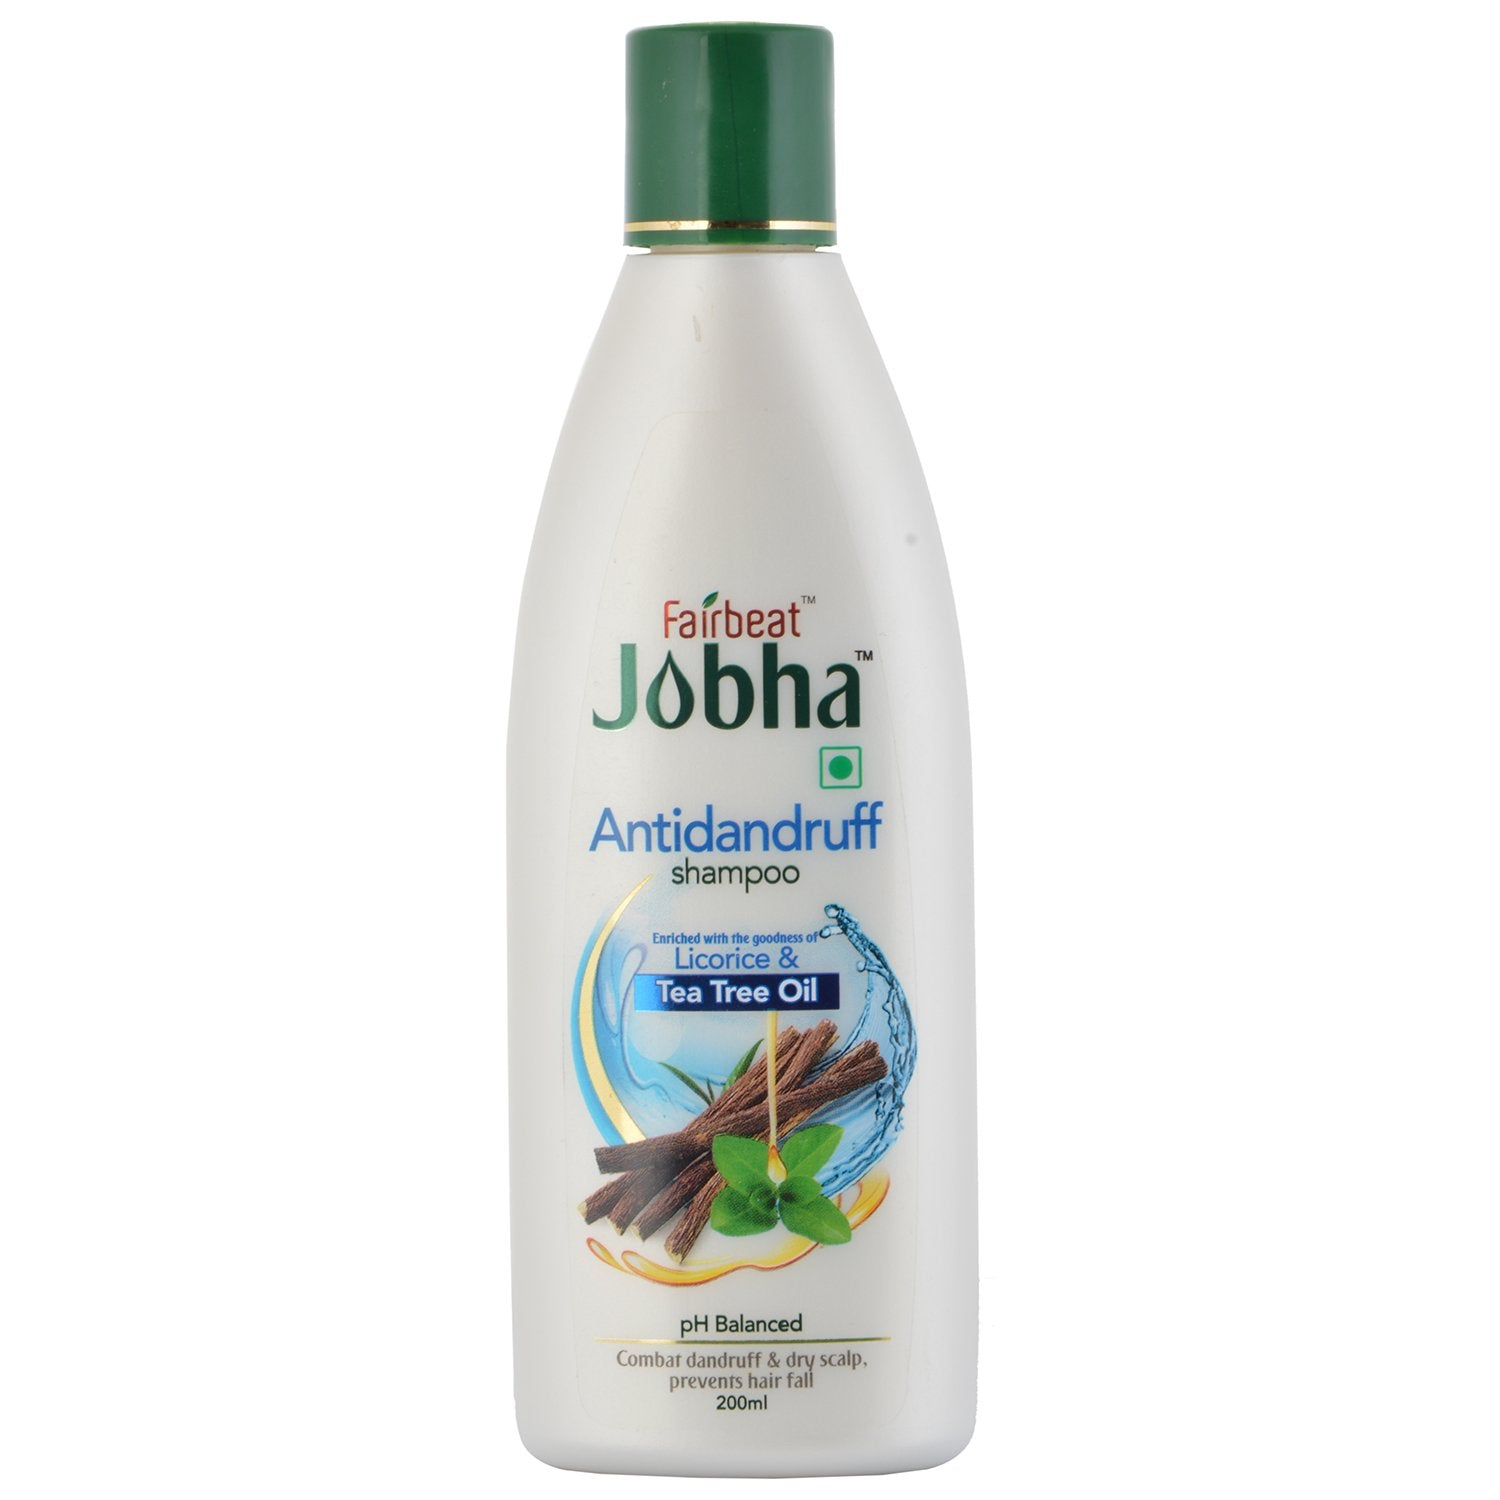 Fairbeat Jobha Antidandruff200ml get best offers deals free and coupons online at buythevalue.in